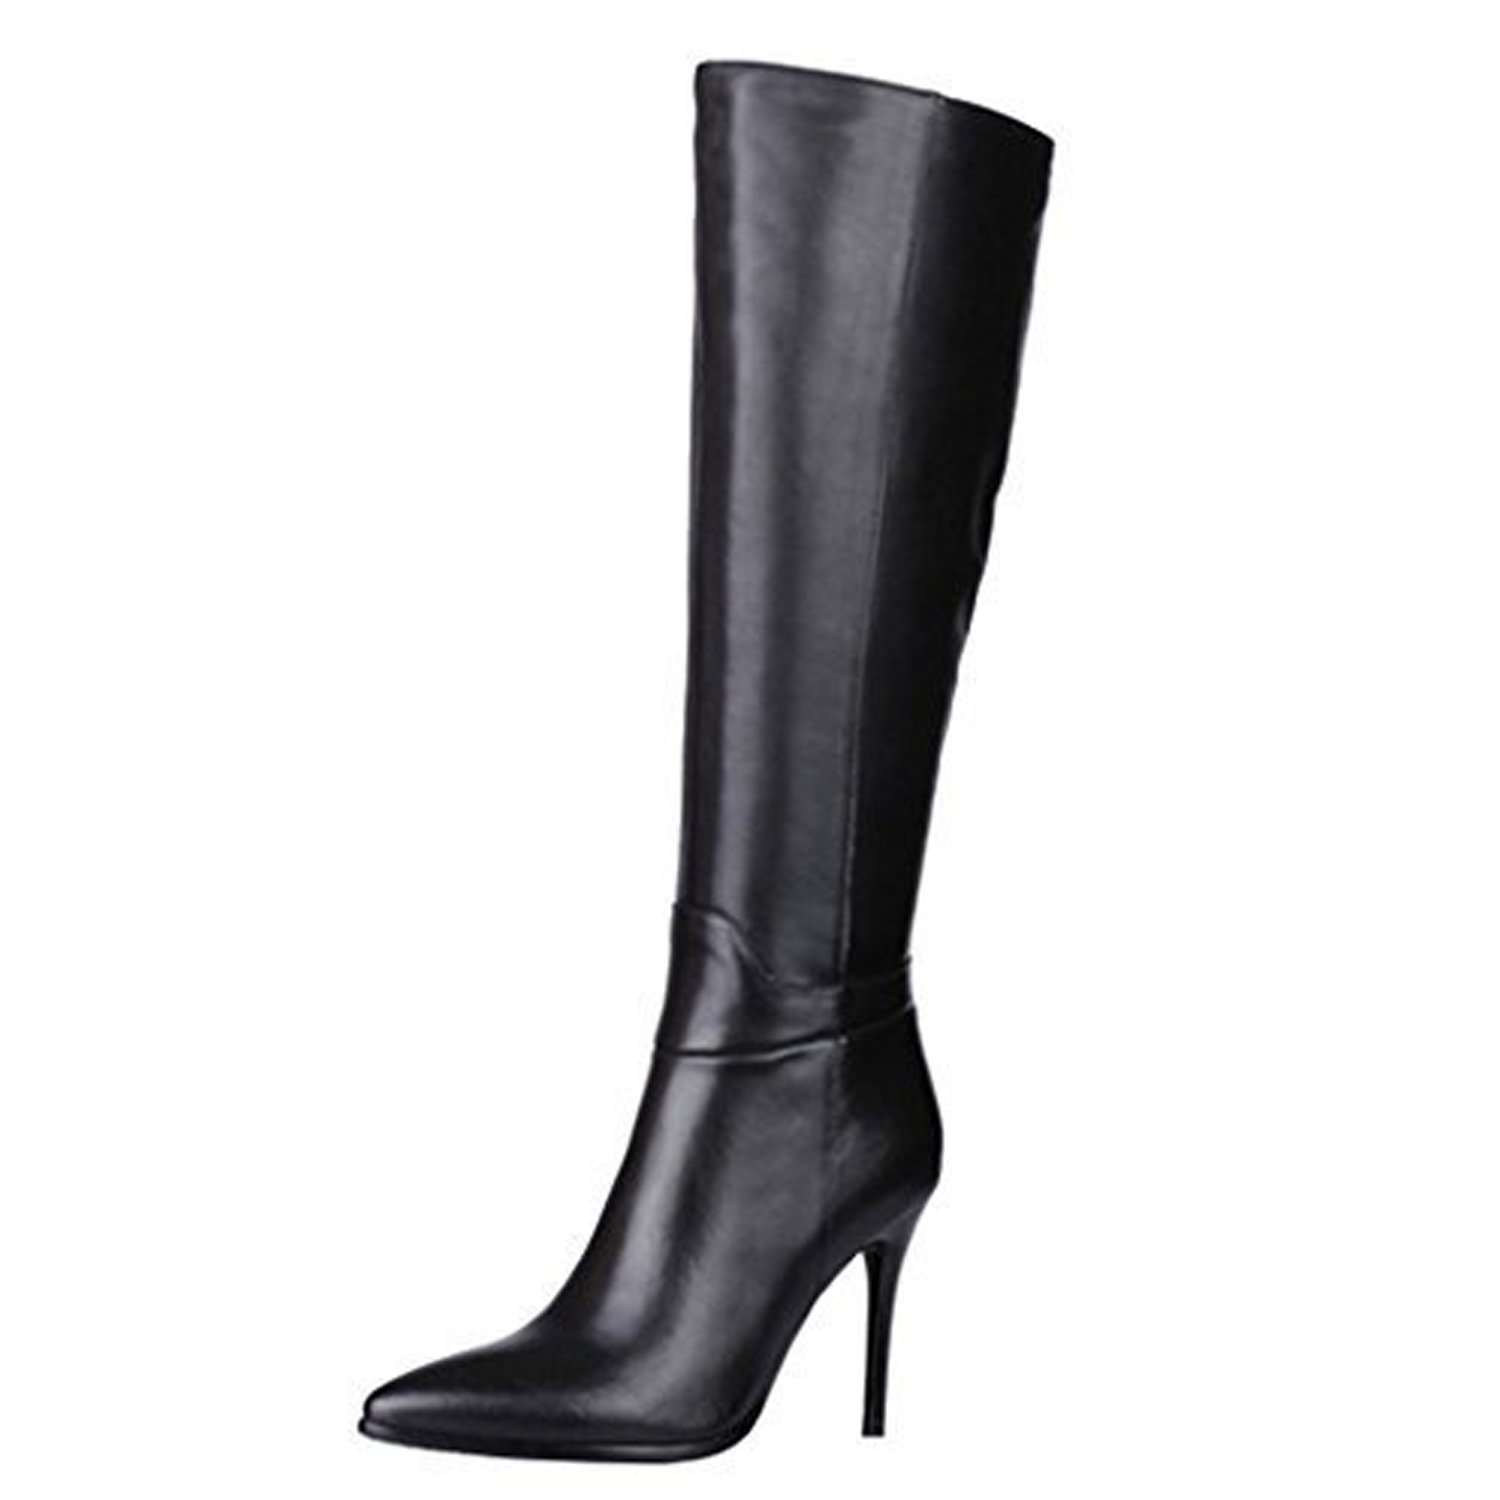 d162c78aab676 Amazon.com | VOCOSI Women's Leather Knee High Boots Pointy Toe Side-Zip High  Heels Dress Boots | Shoes